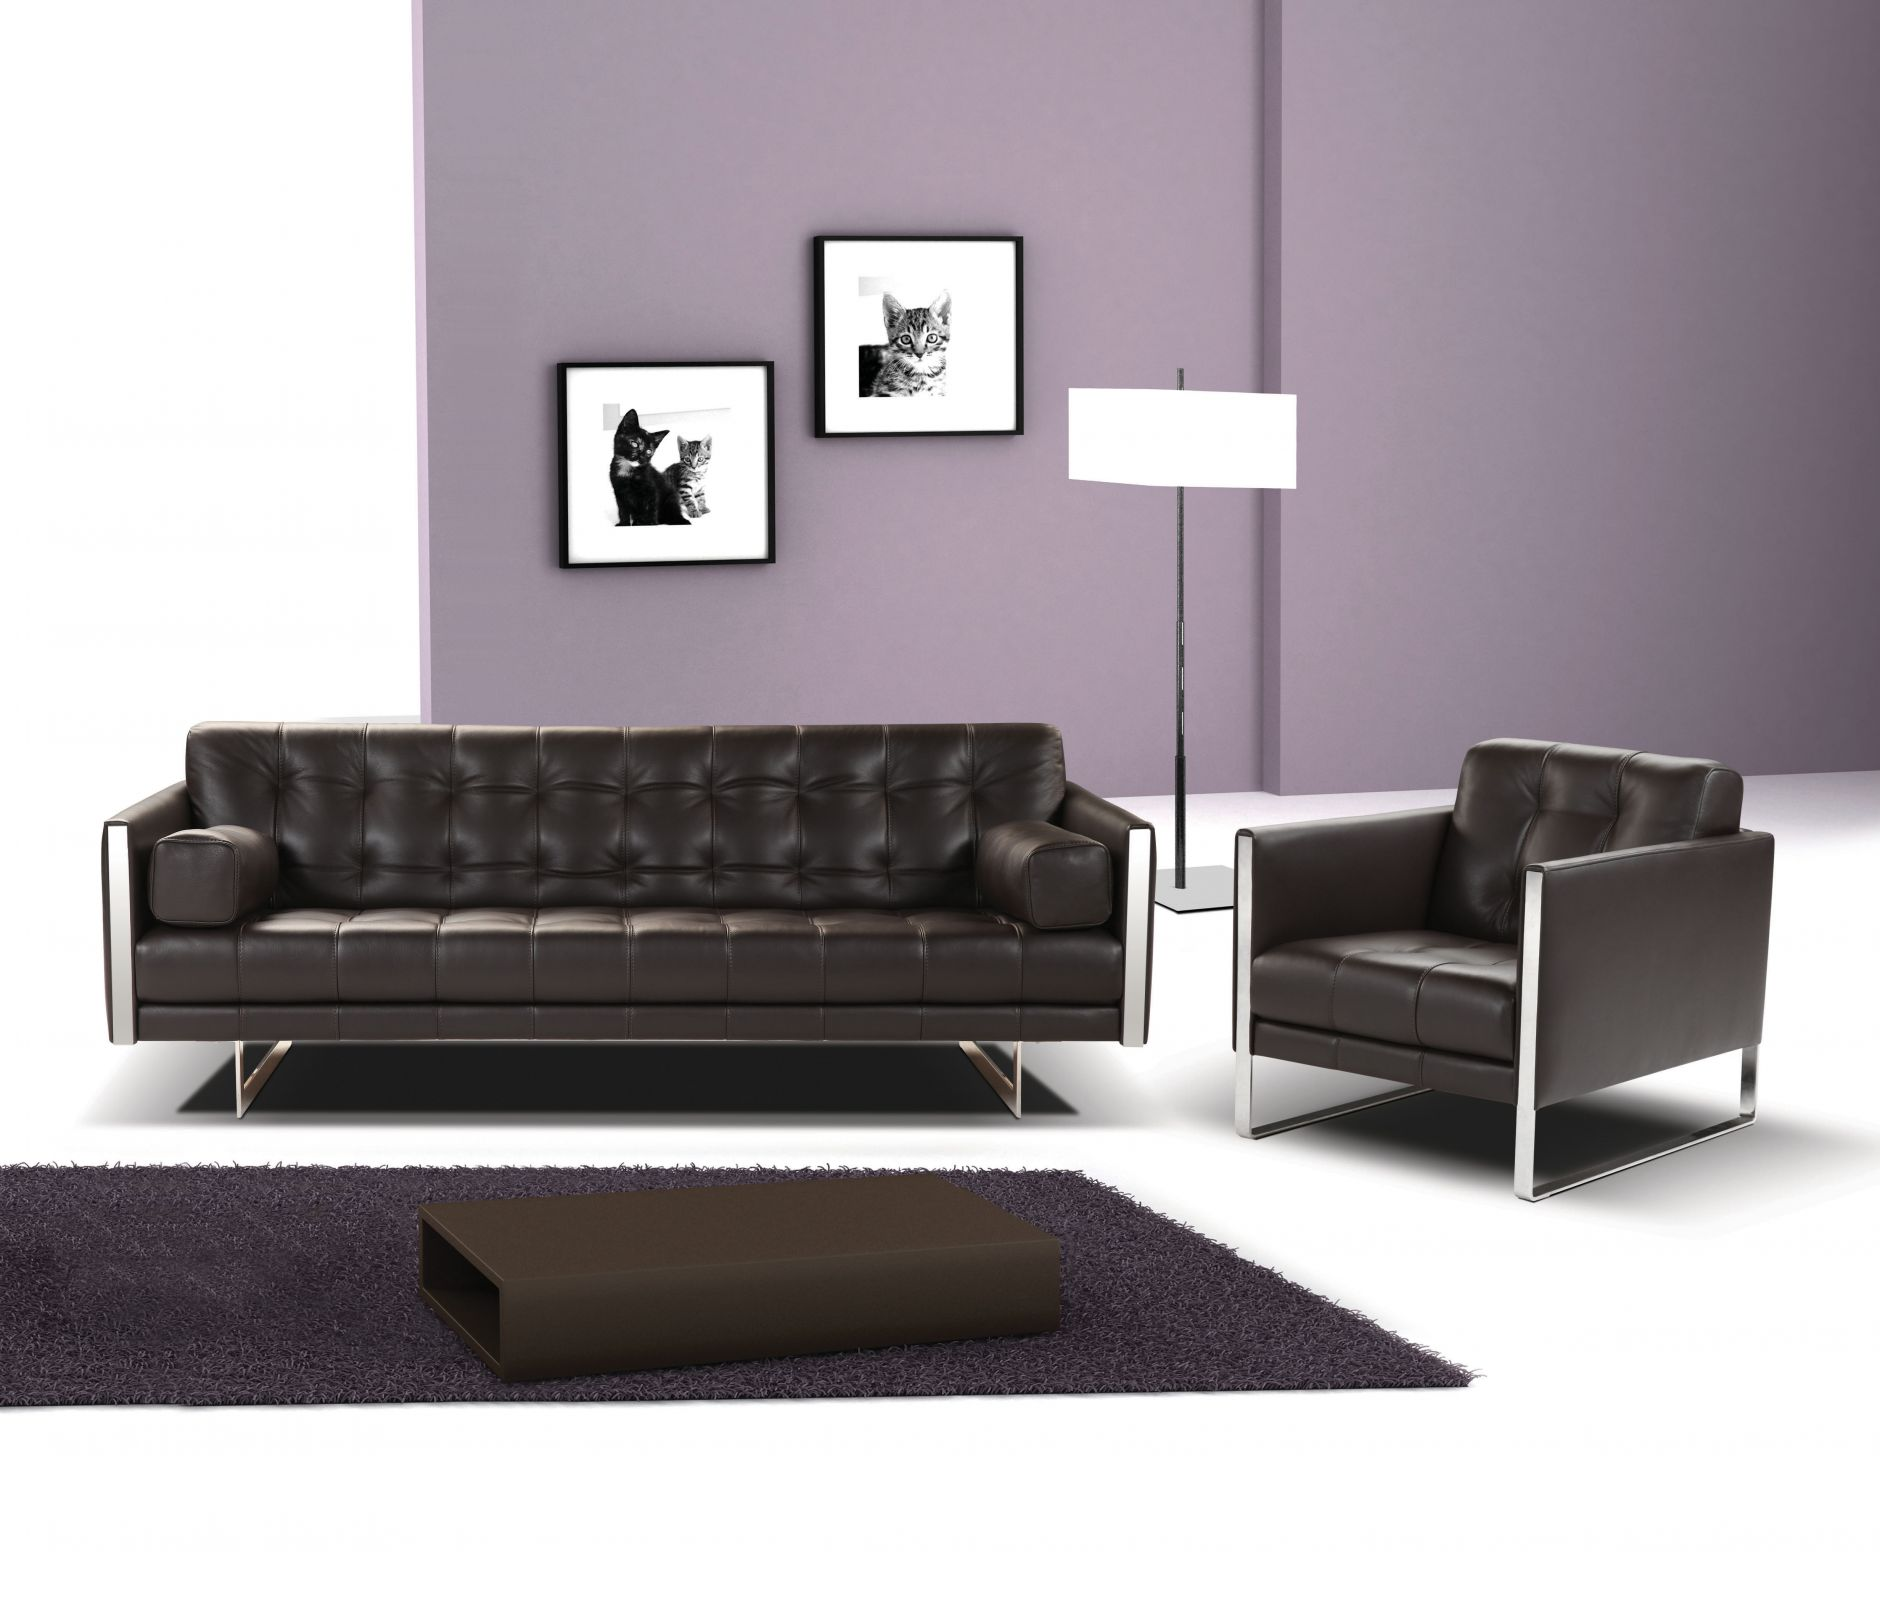 italian sofas upholstered furniture calia italia juliet. Black Bedroom Furniture Sets. Home Design Ideas